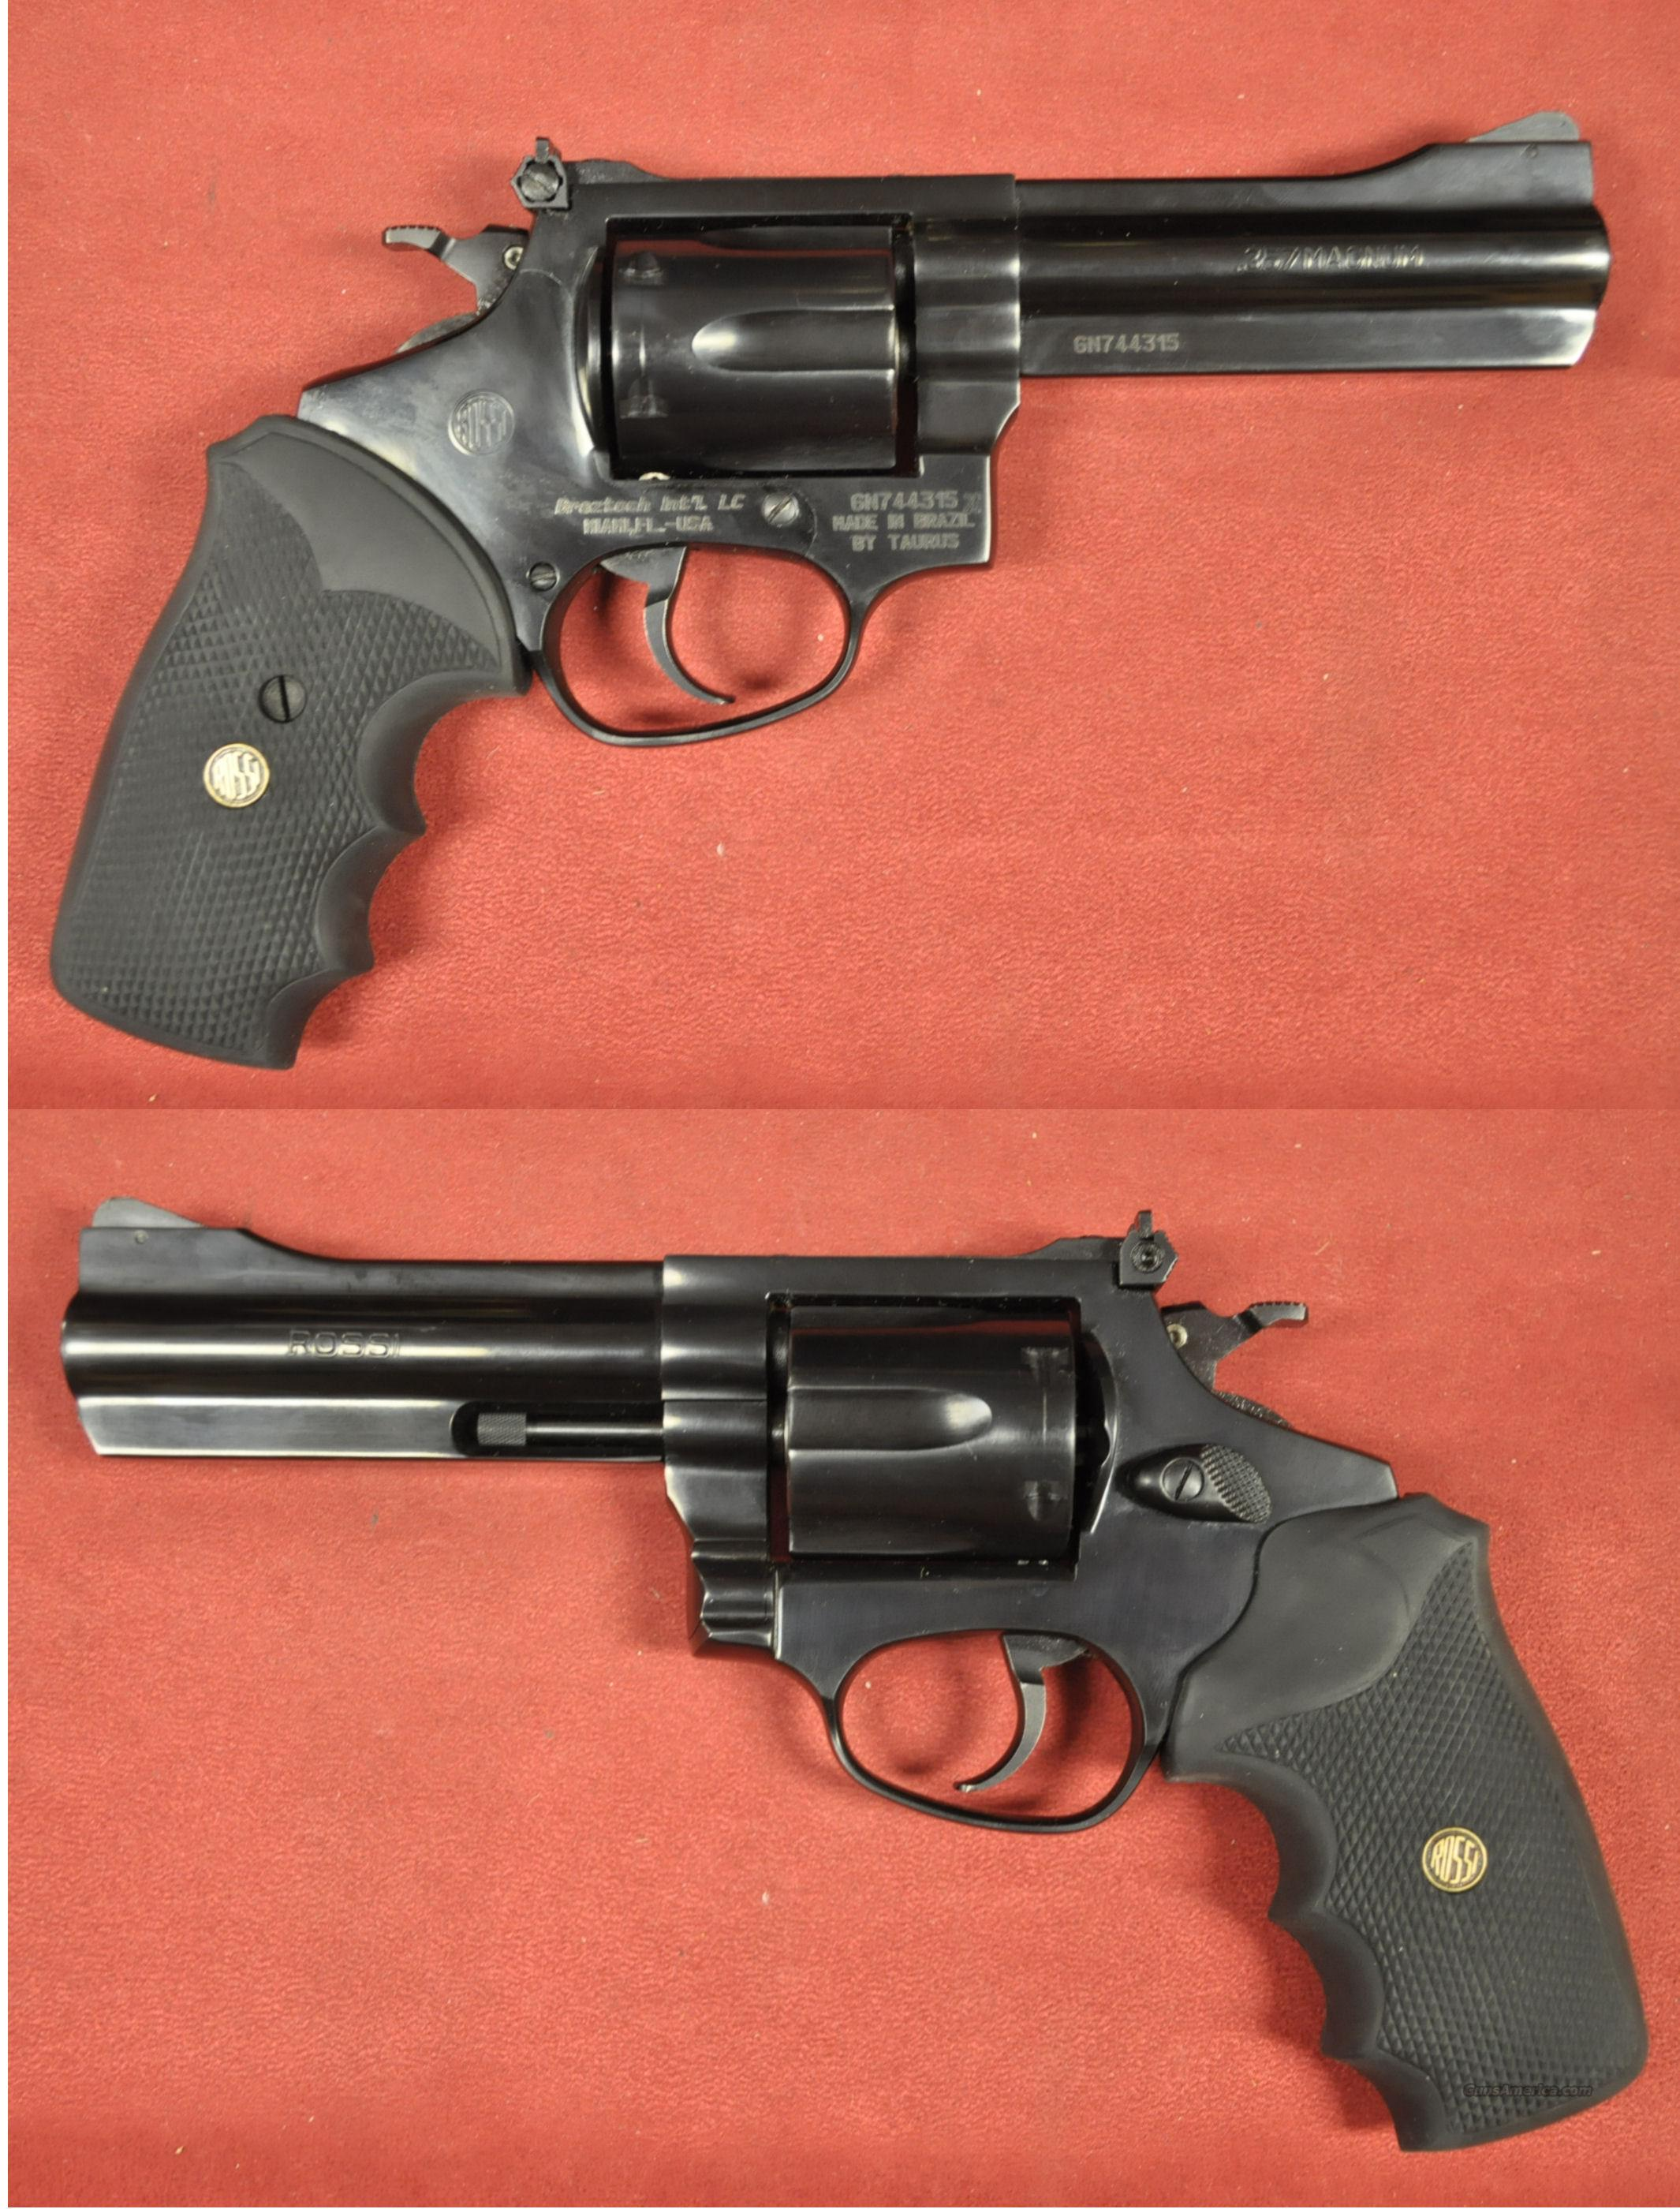 Rossi 971 .357 Mag  factory reconditioned  *MUST CALL*  Guns > Pistols > Rossi Revolvers